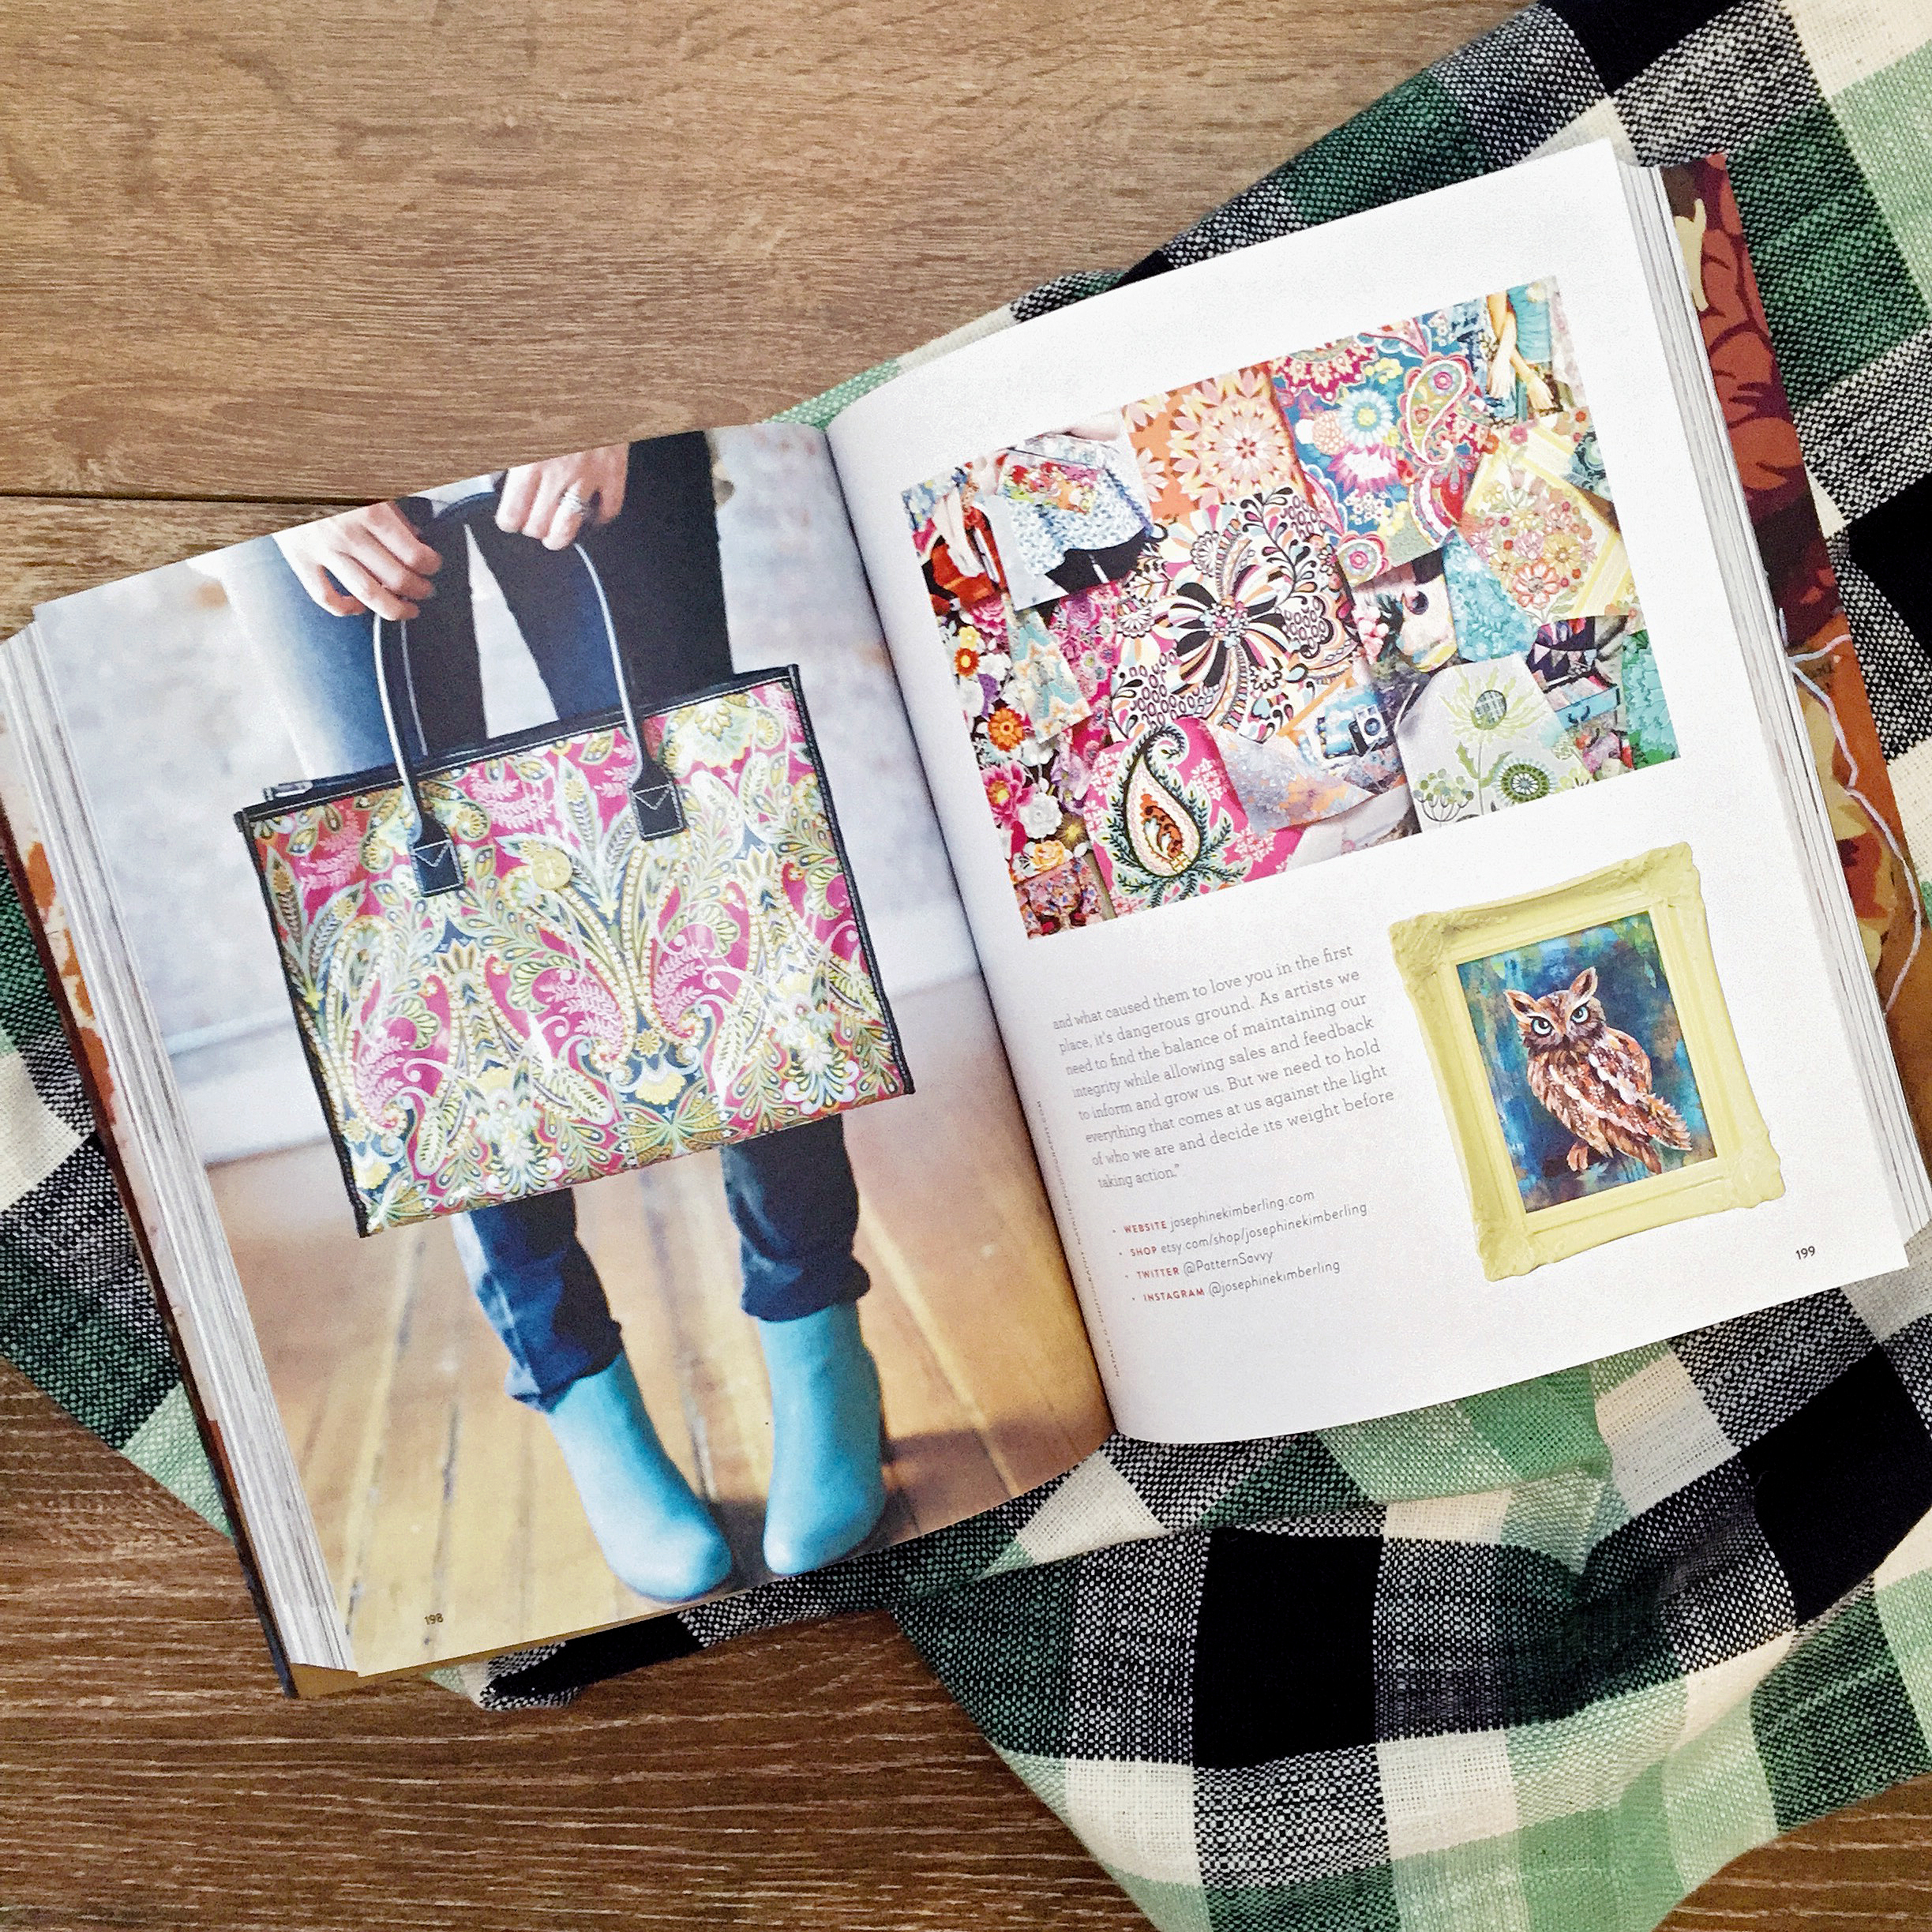 Josephine Kimberling featured in the UPPERCASE Compendium of Craft and Creativity